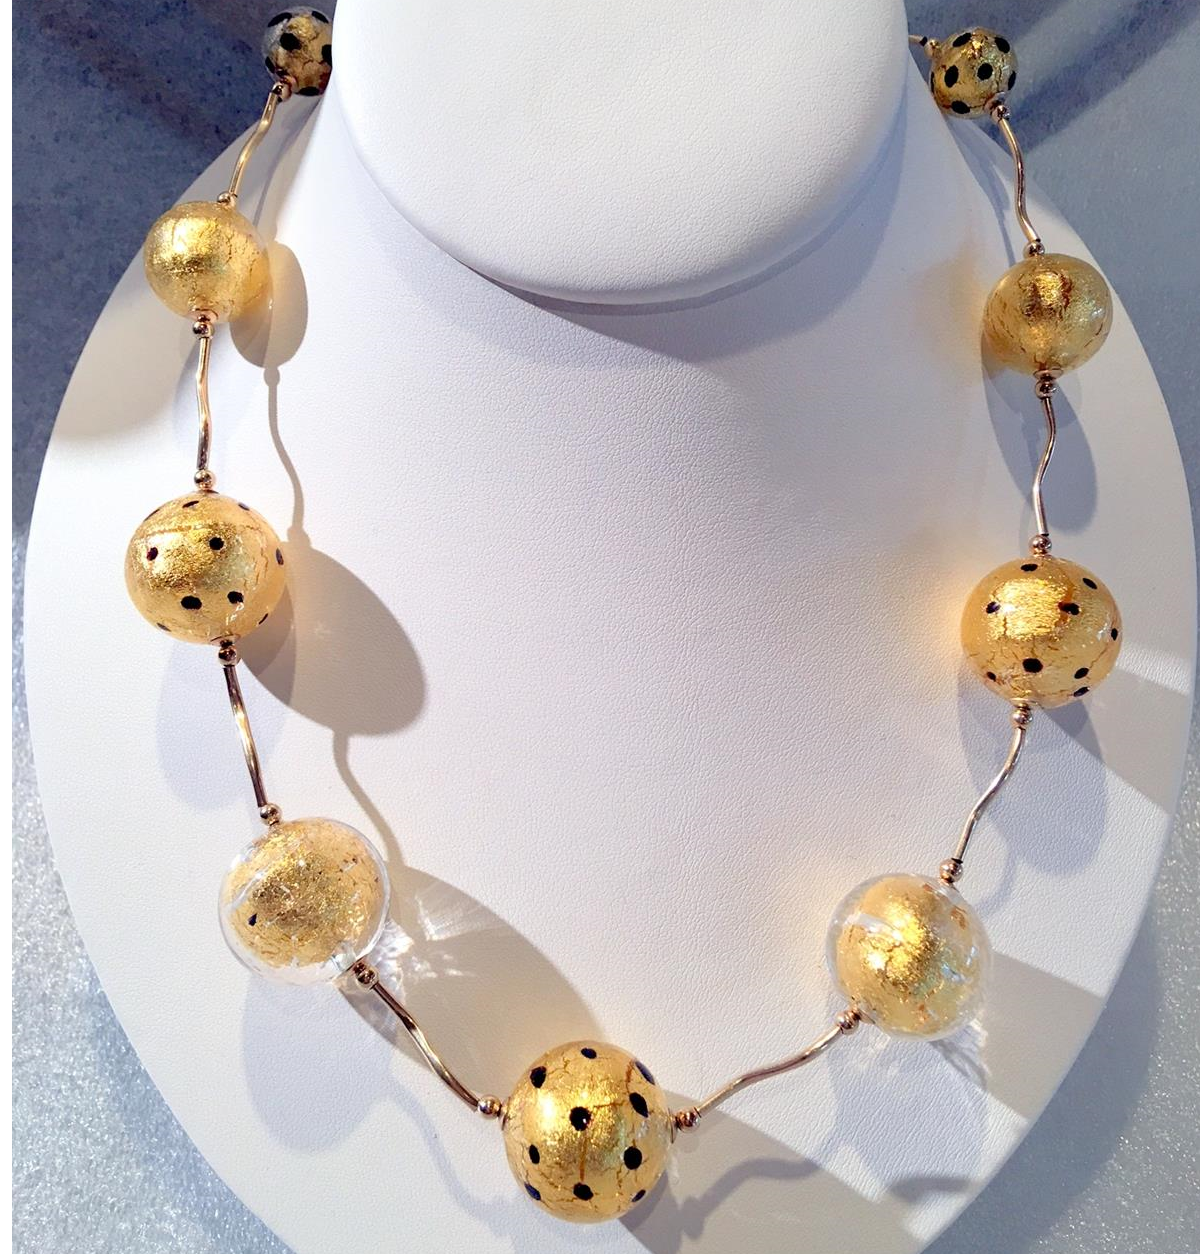 Murano glass, gold & dotted glass beads, 24K Gold foil beads, Gold Necklace